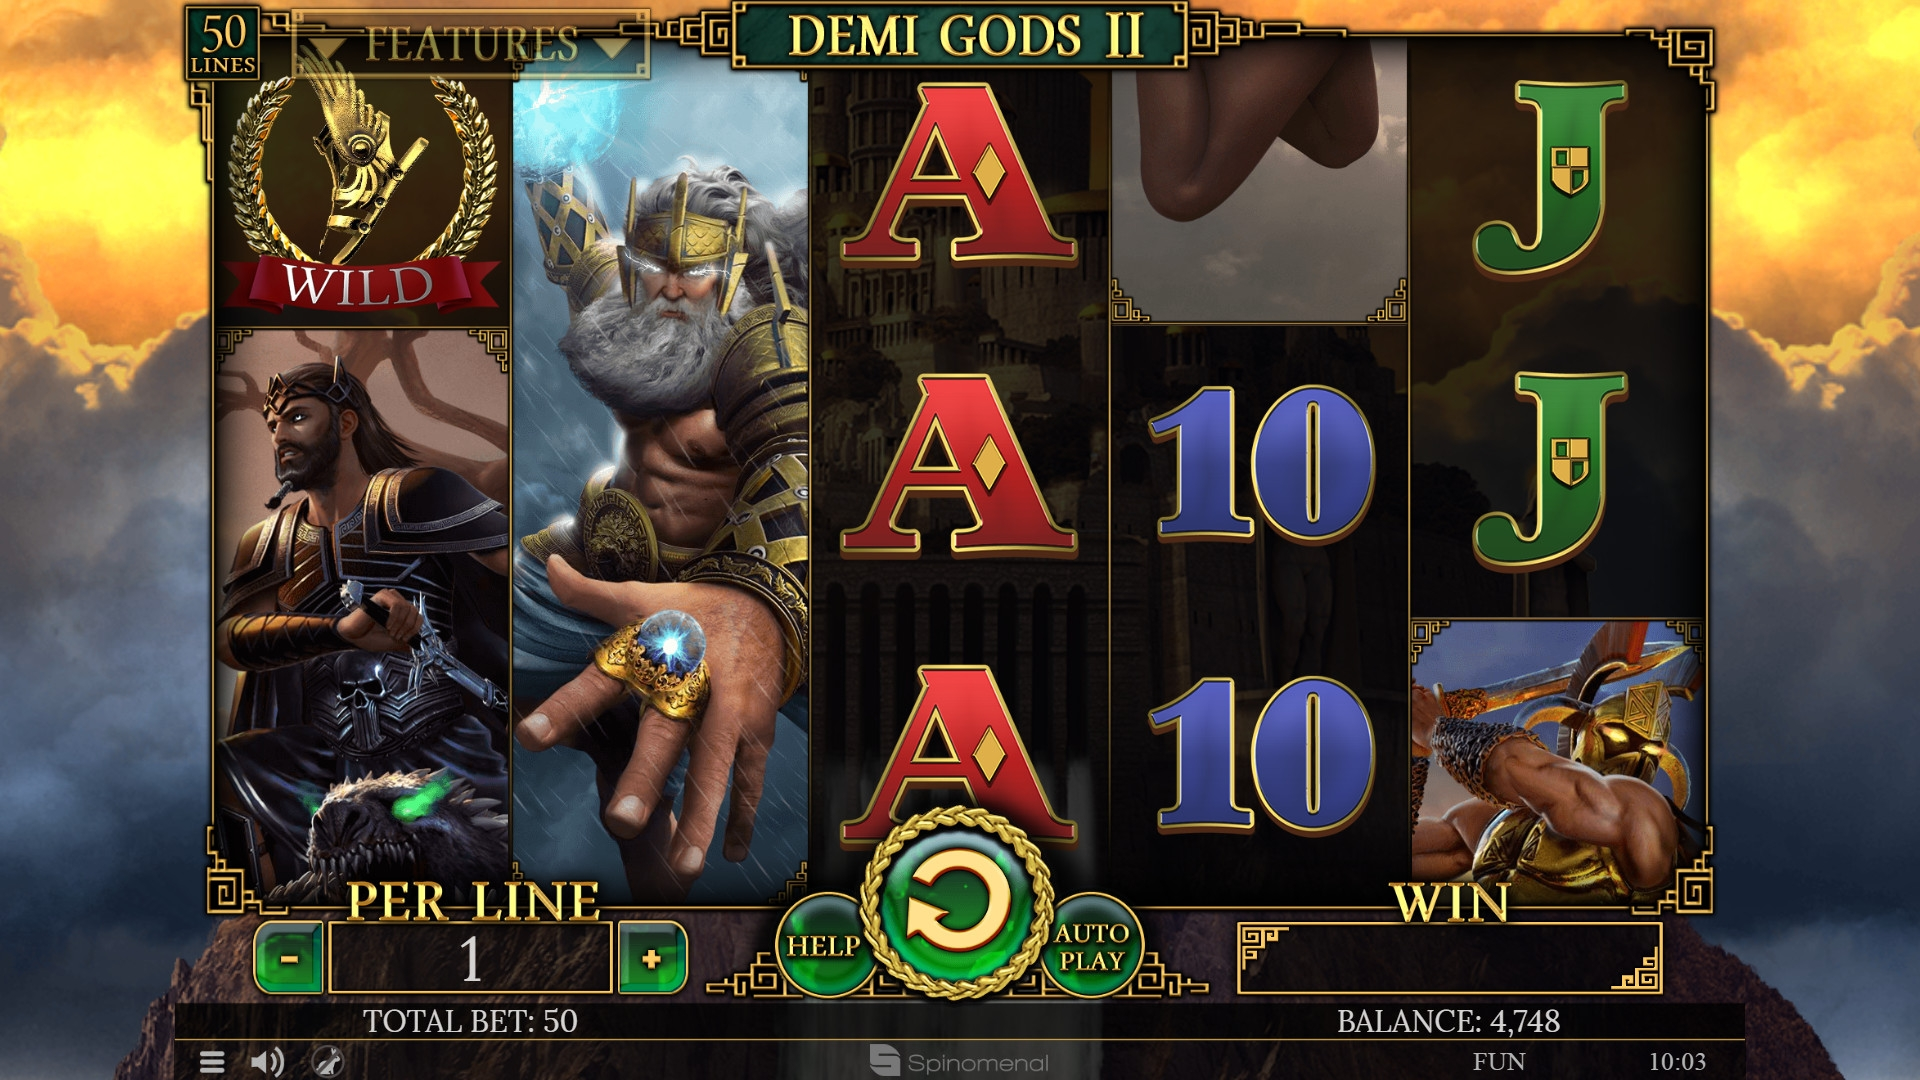 Demi Gods II (Demi Gods II) from category Slots